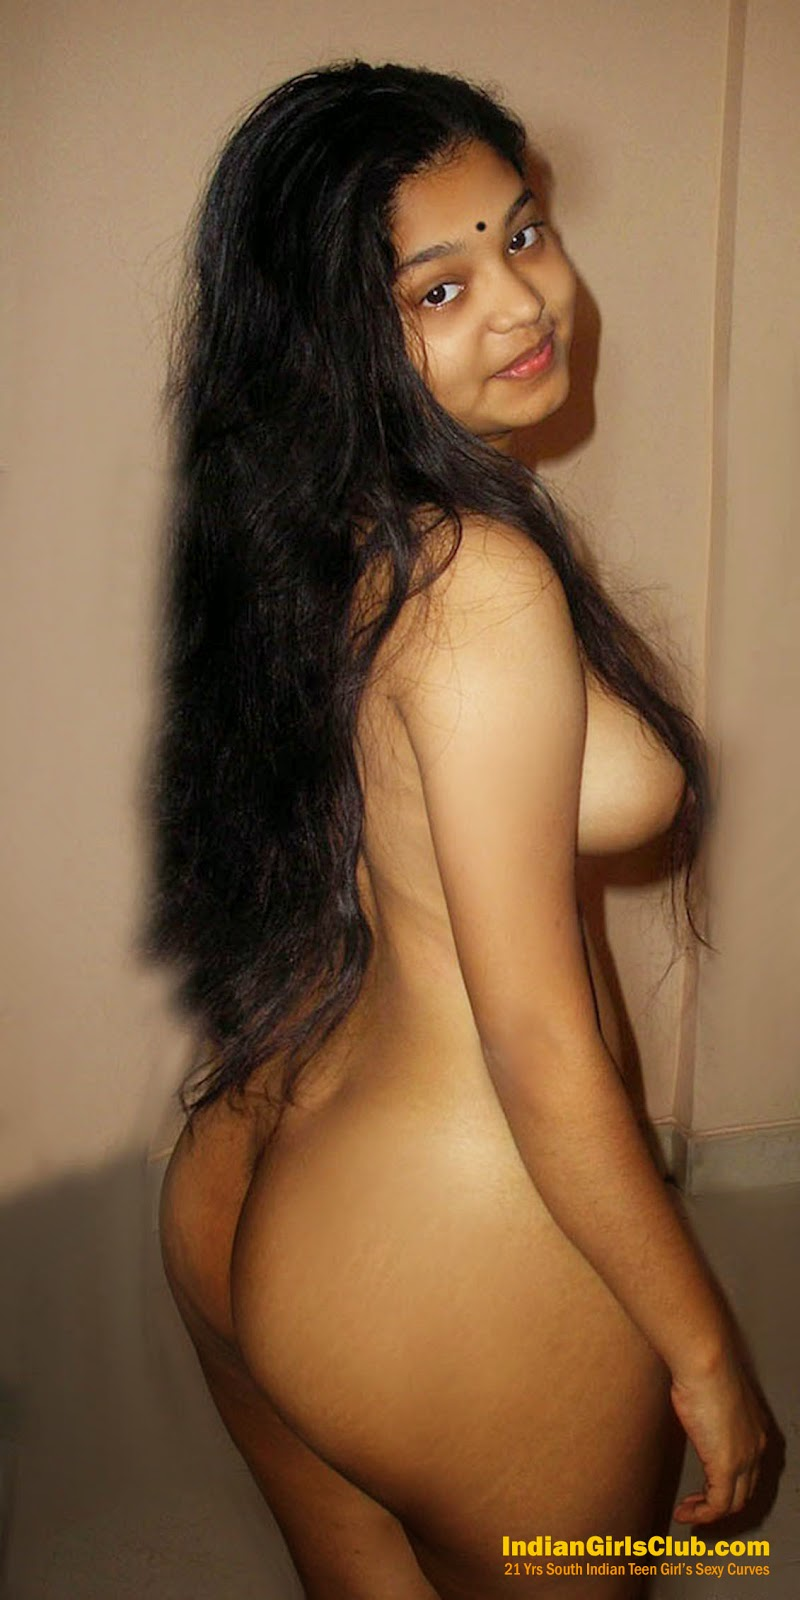 Indian girls sexy naked nude